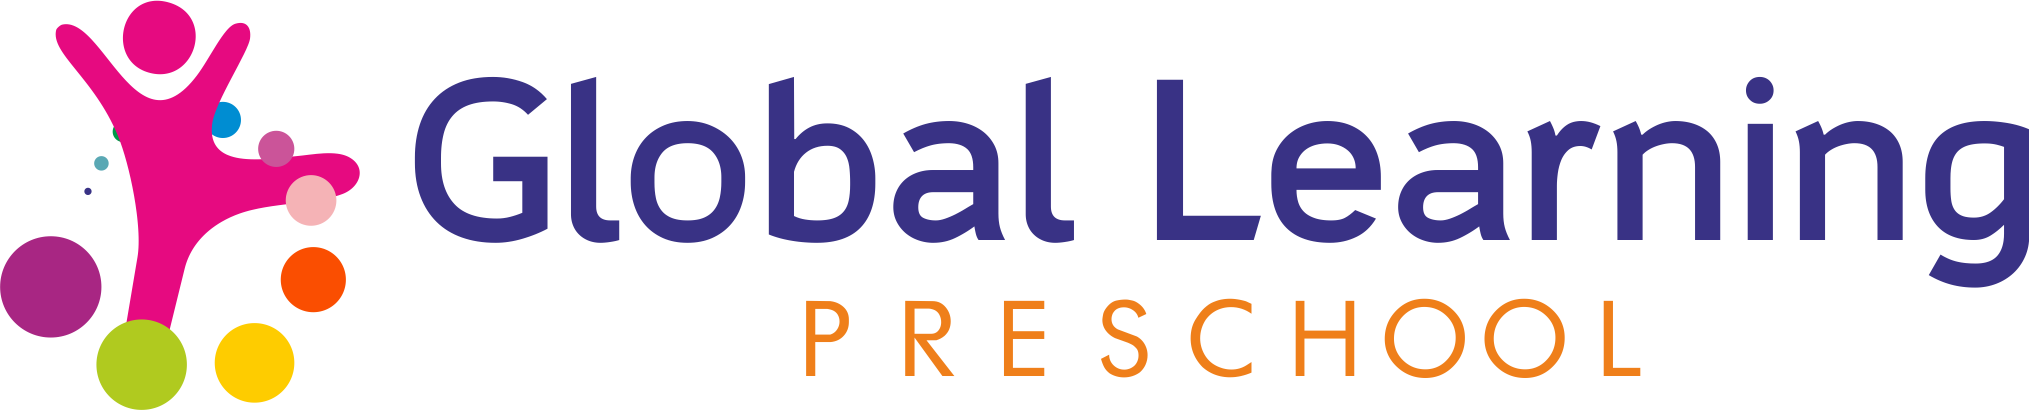 Global Learning Preschool